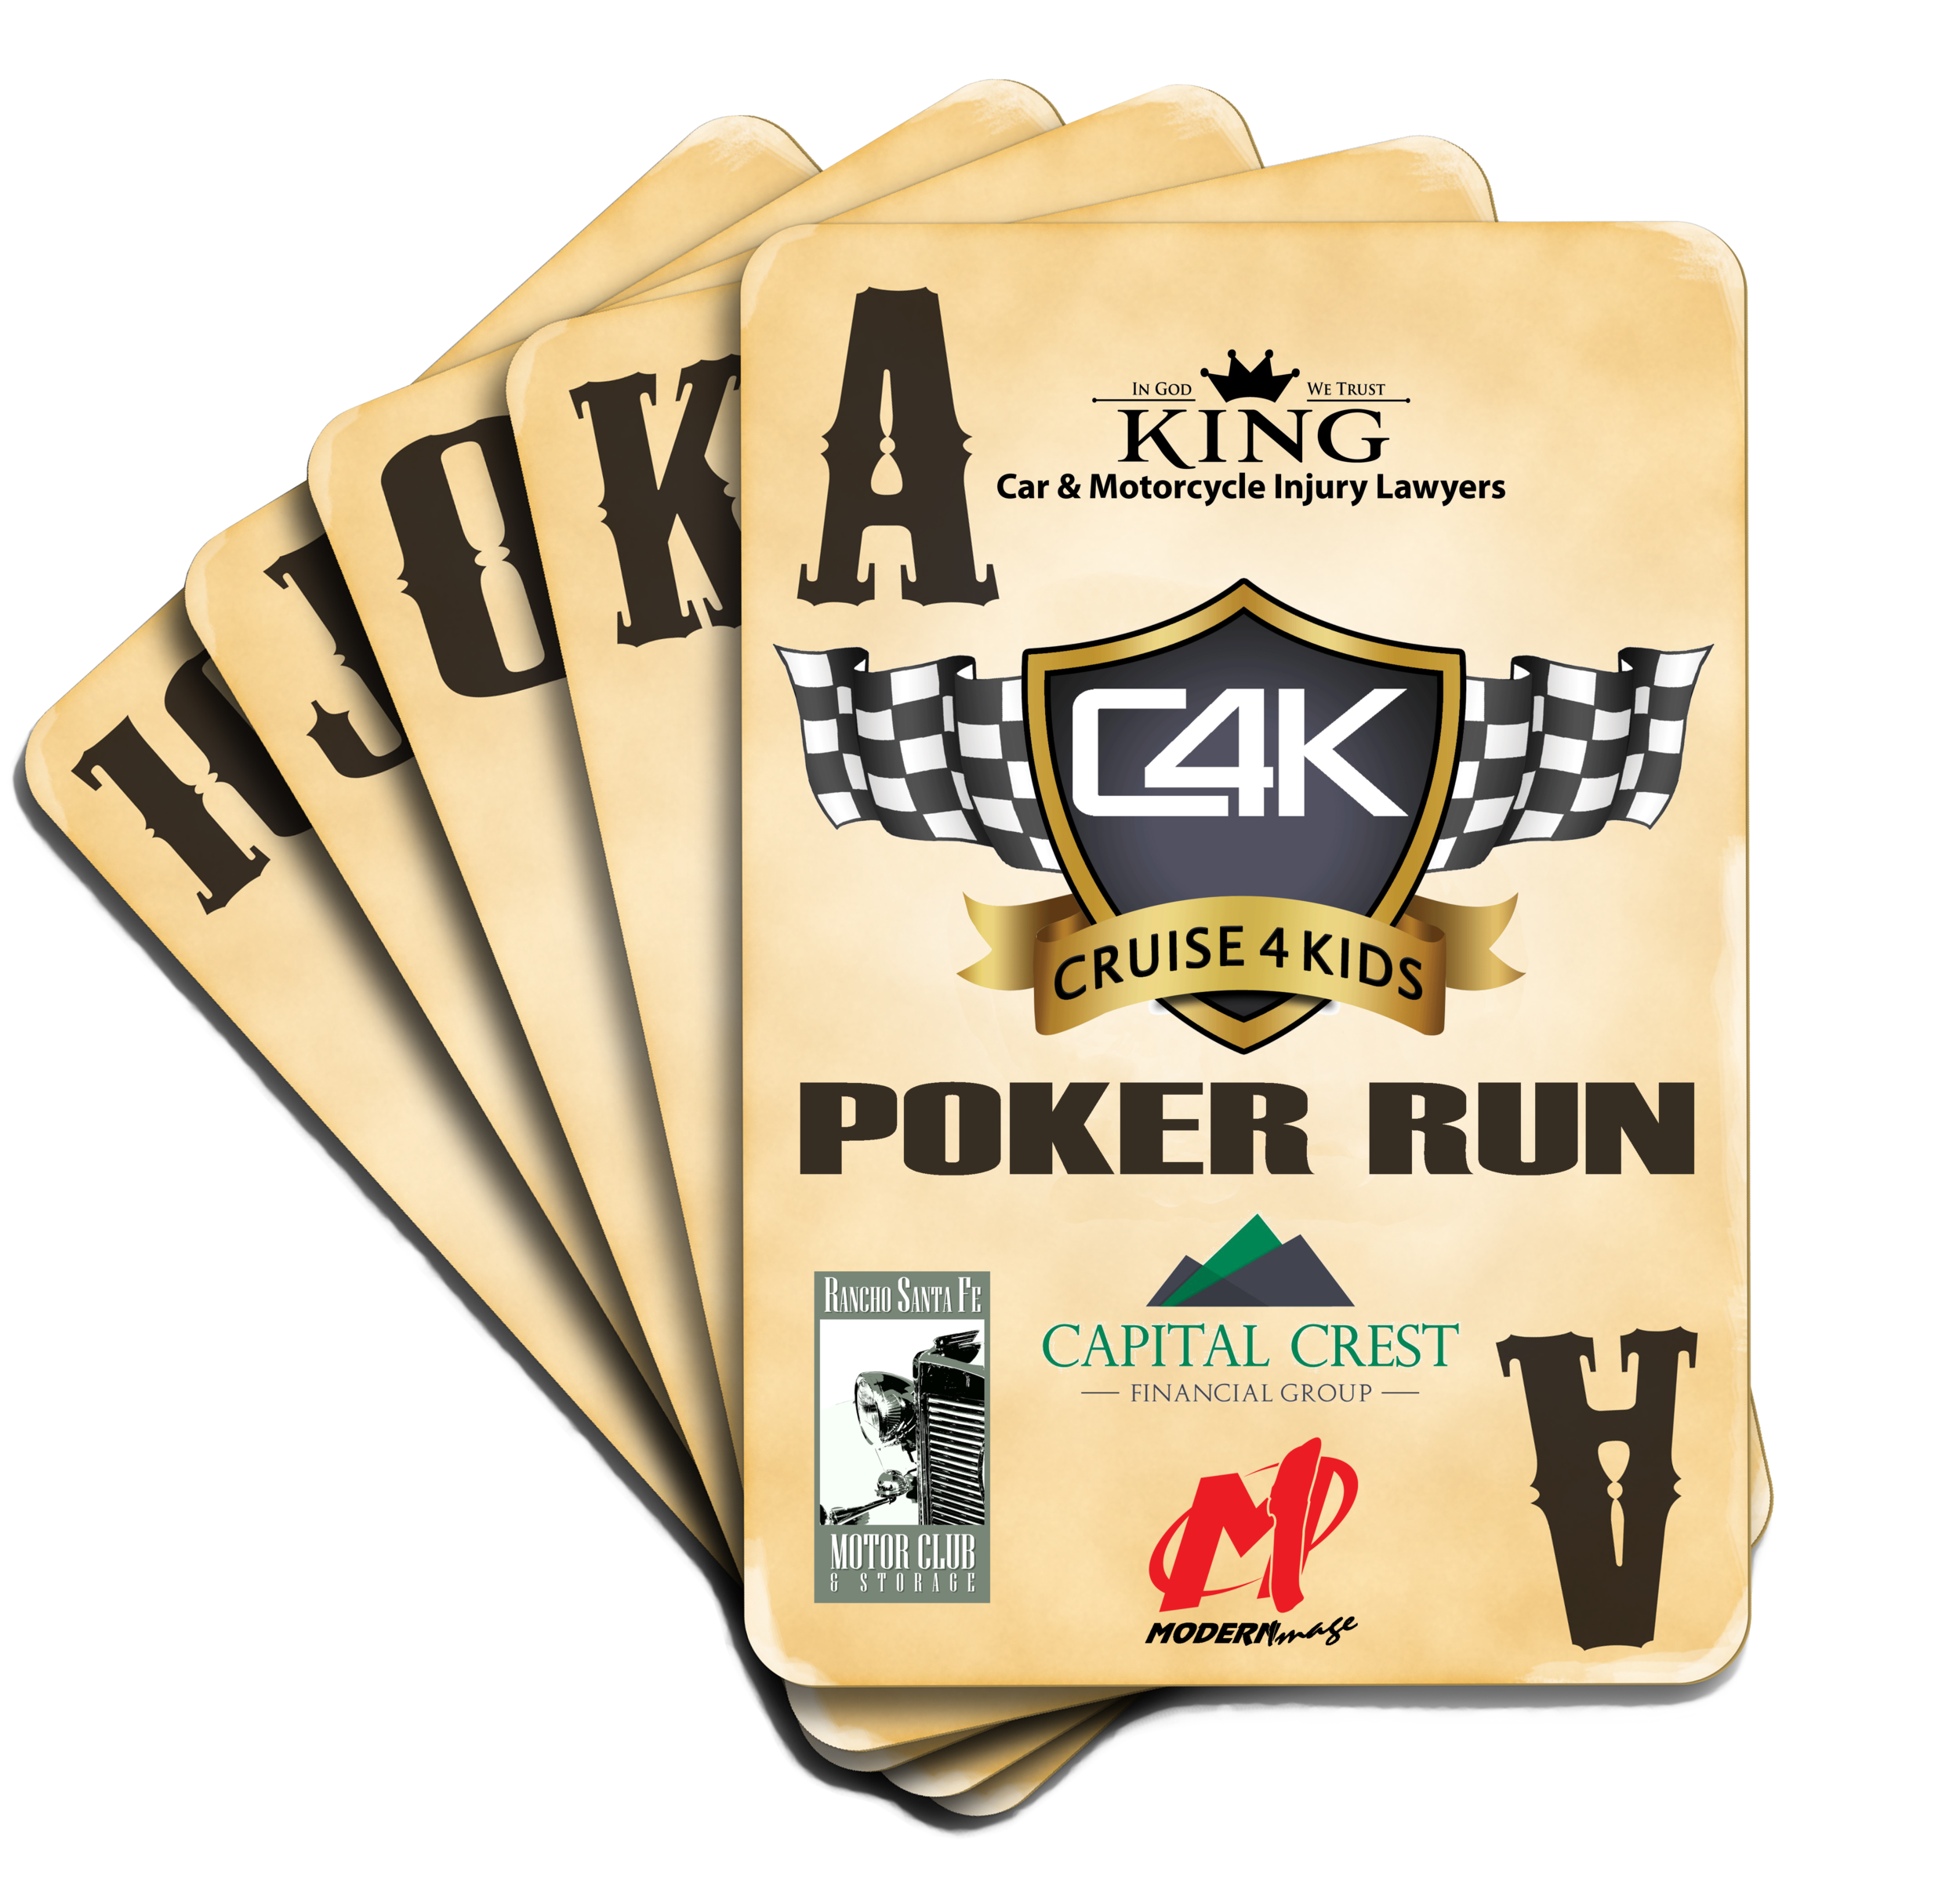 2017-c4k-poker-run-decal-logo